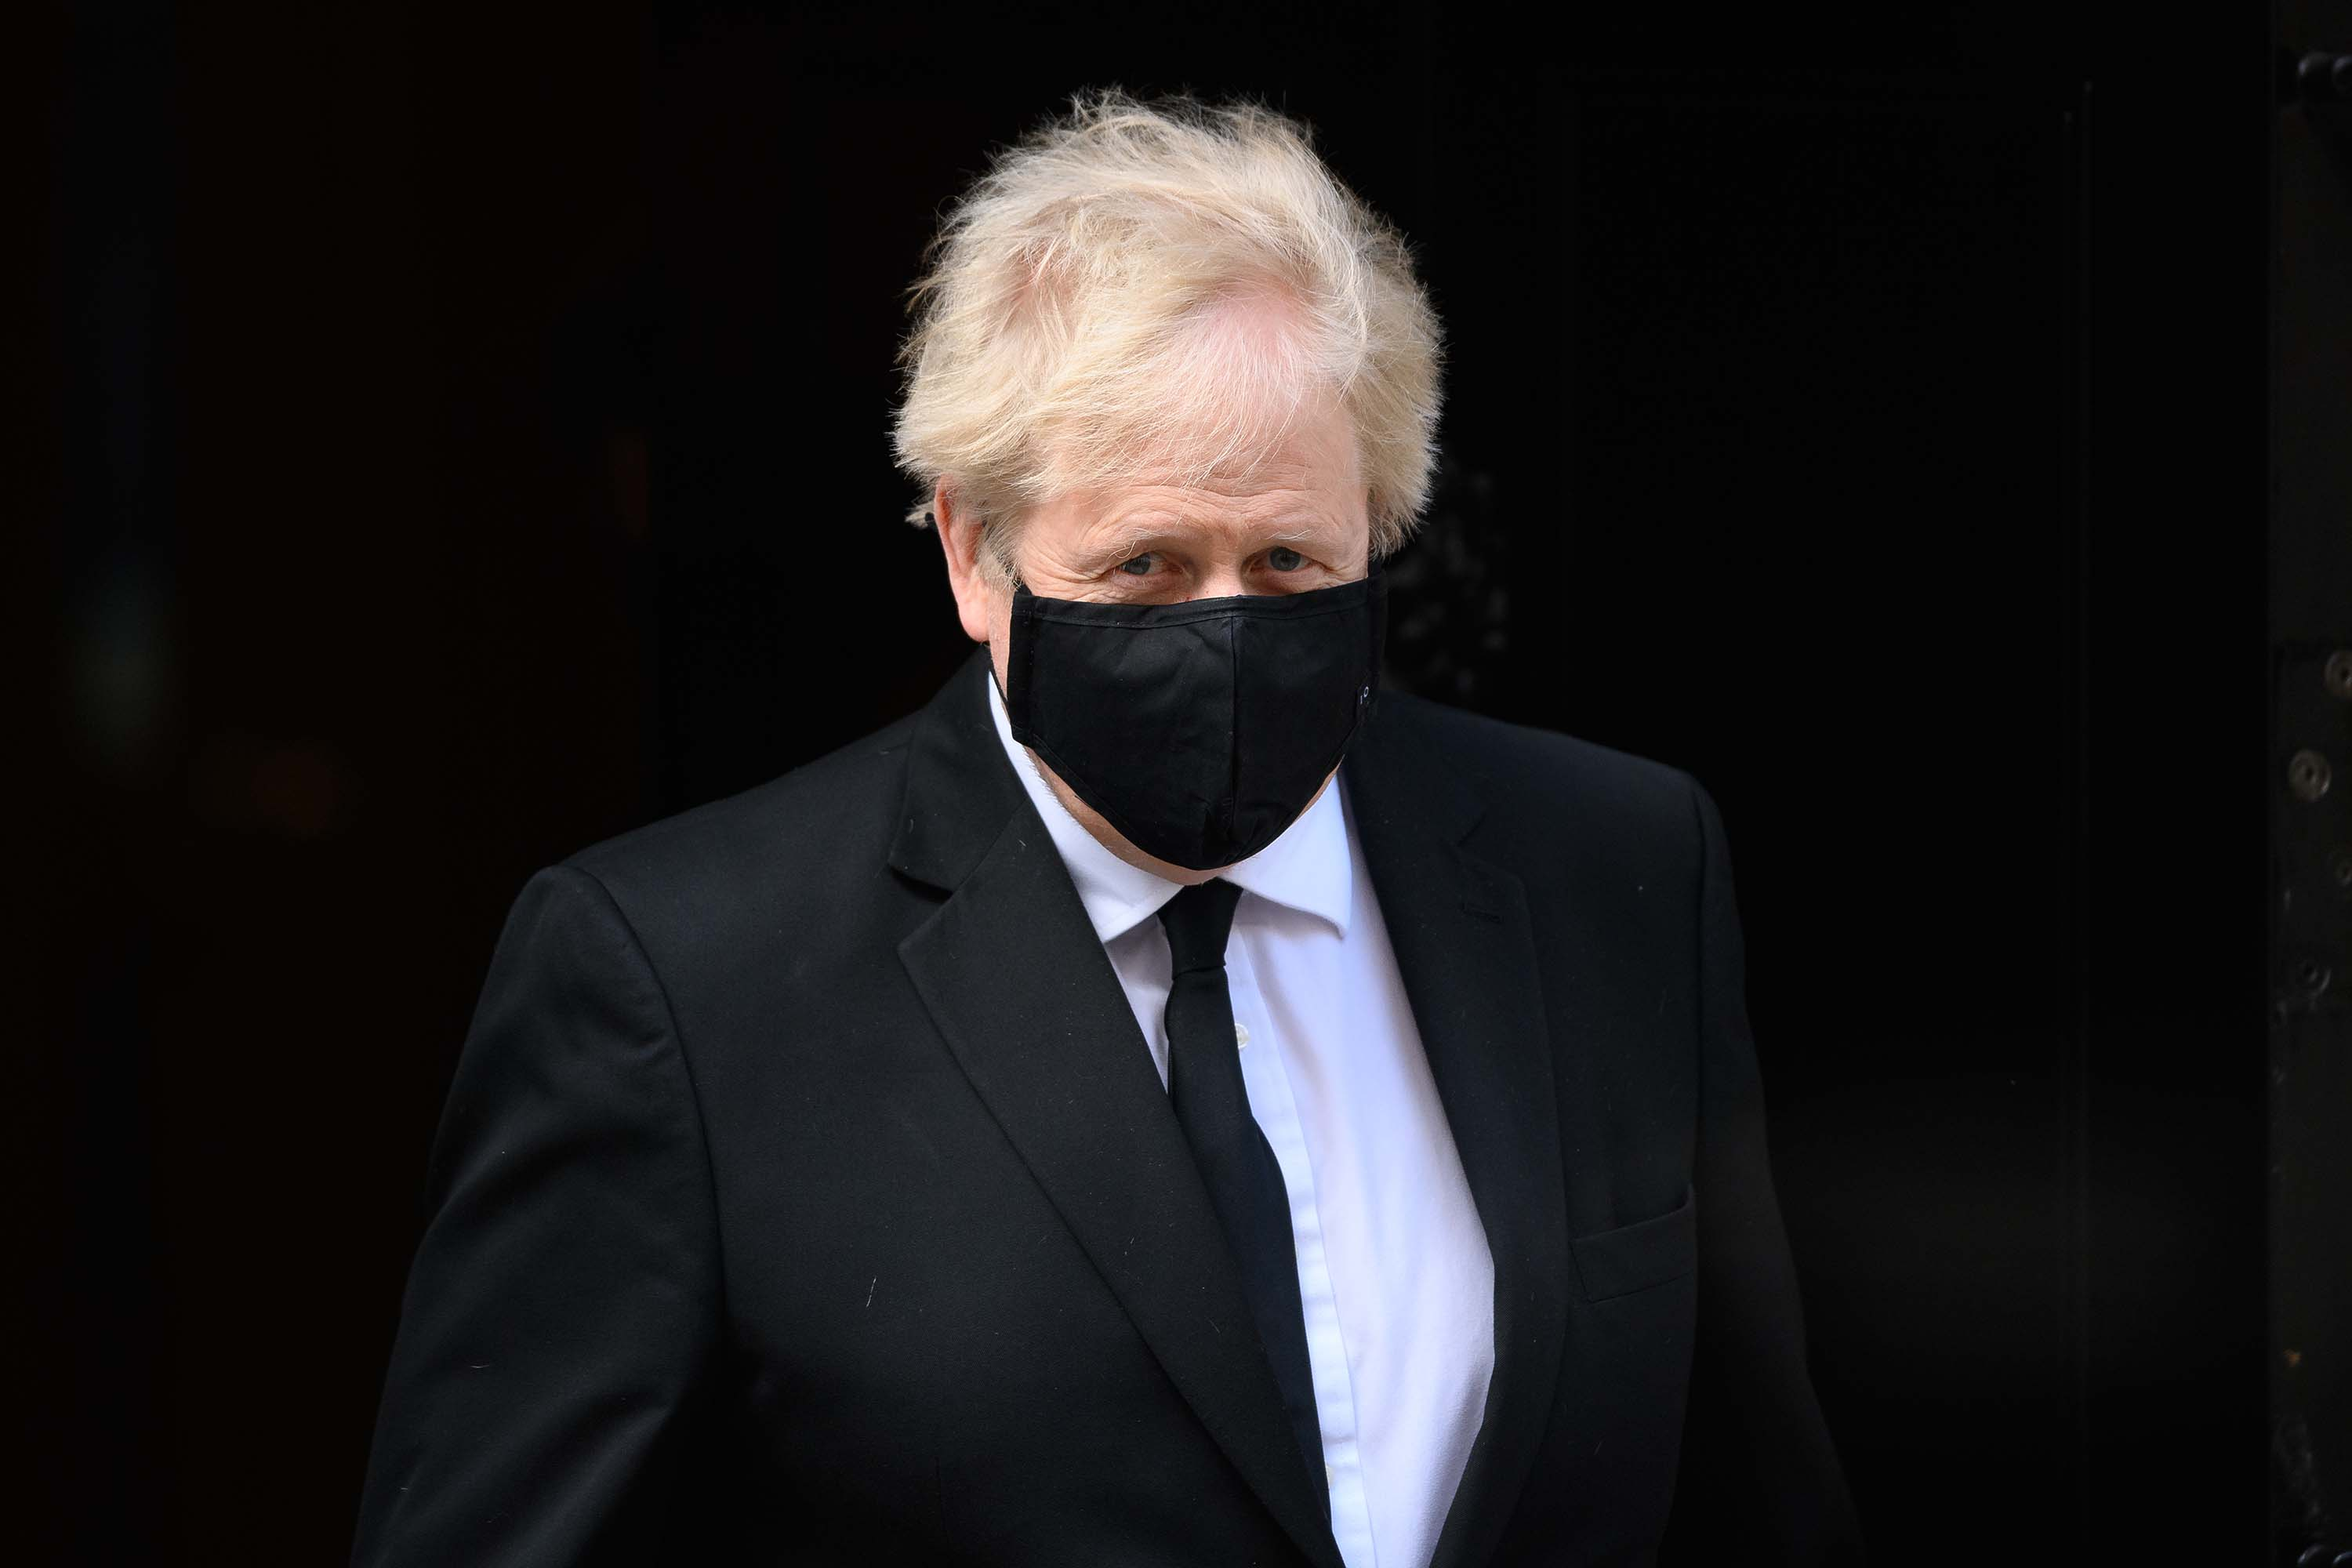 British Prime Minister Boris Johnson is pictured leaving 10 Downing Street in London, ahead of a tribute session in the House of Commons for Prince Philip, on April 12.